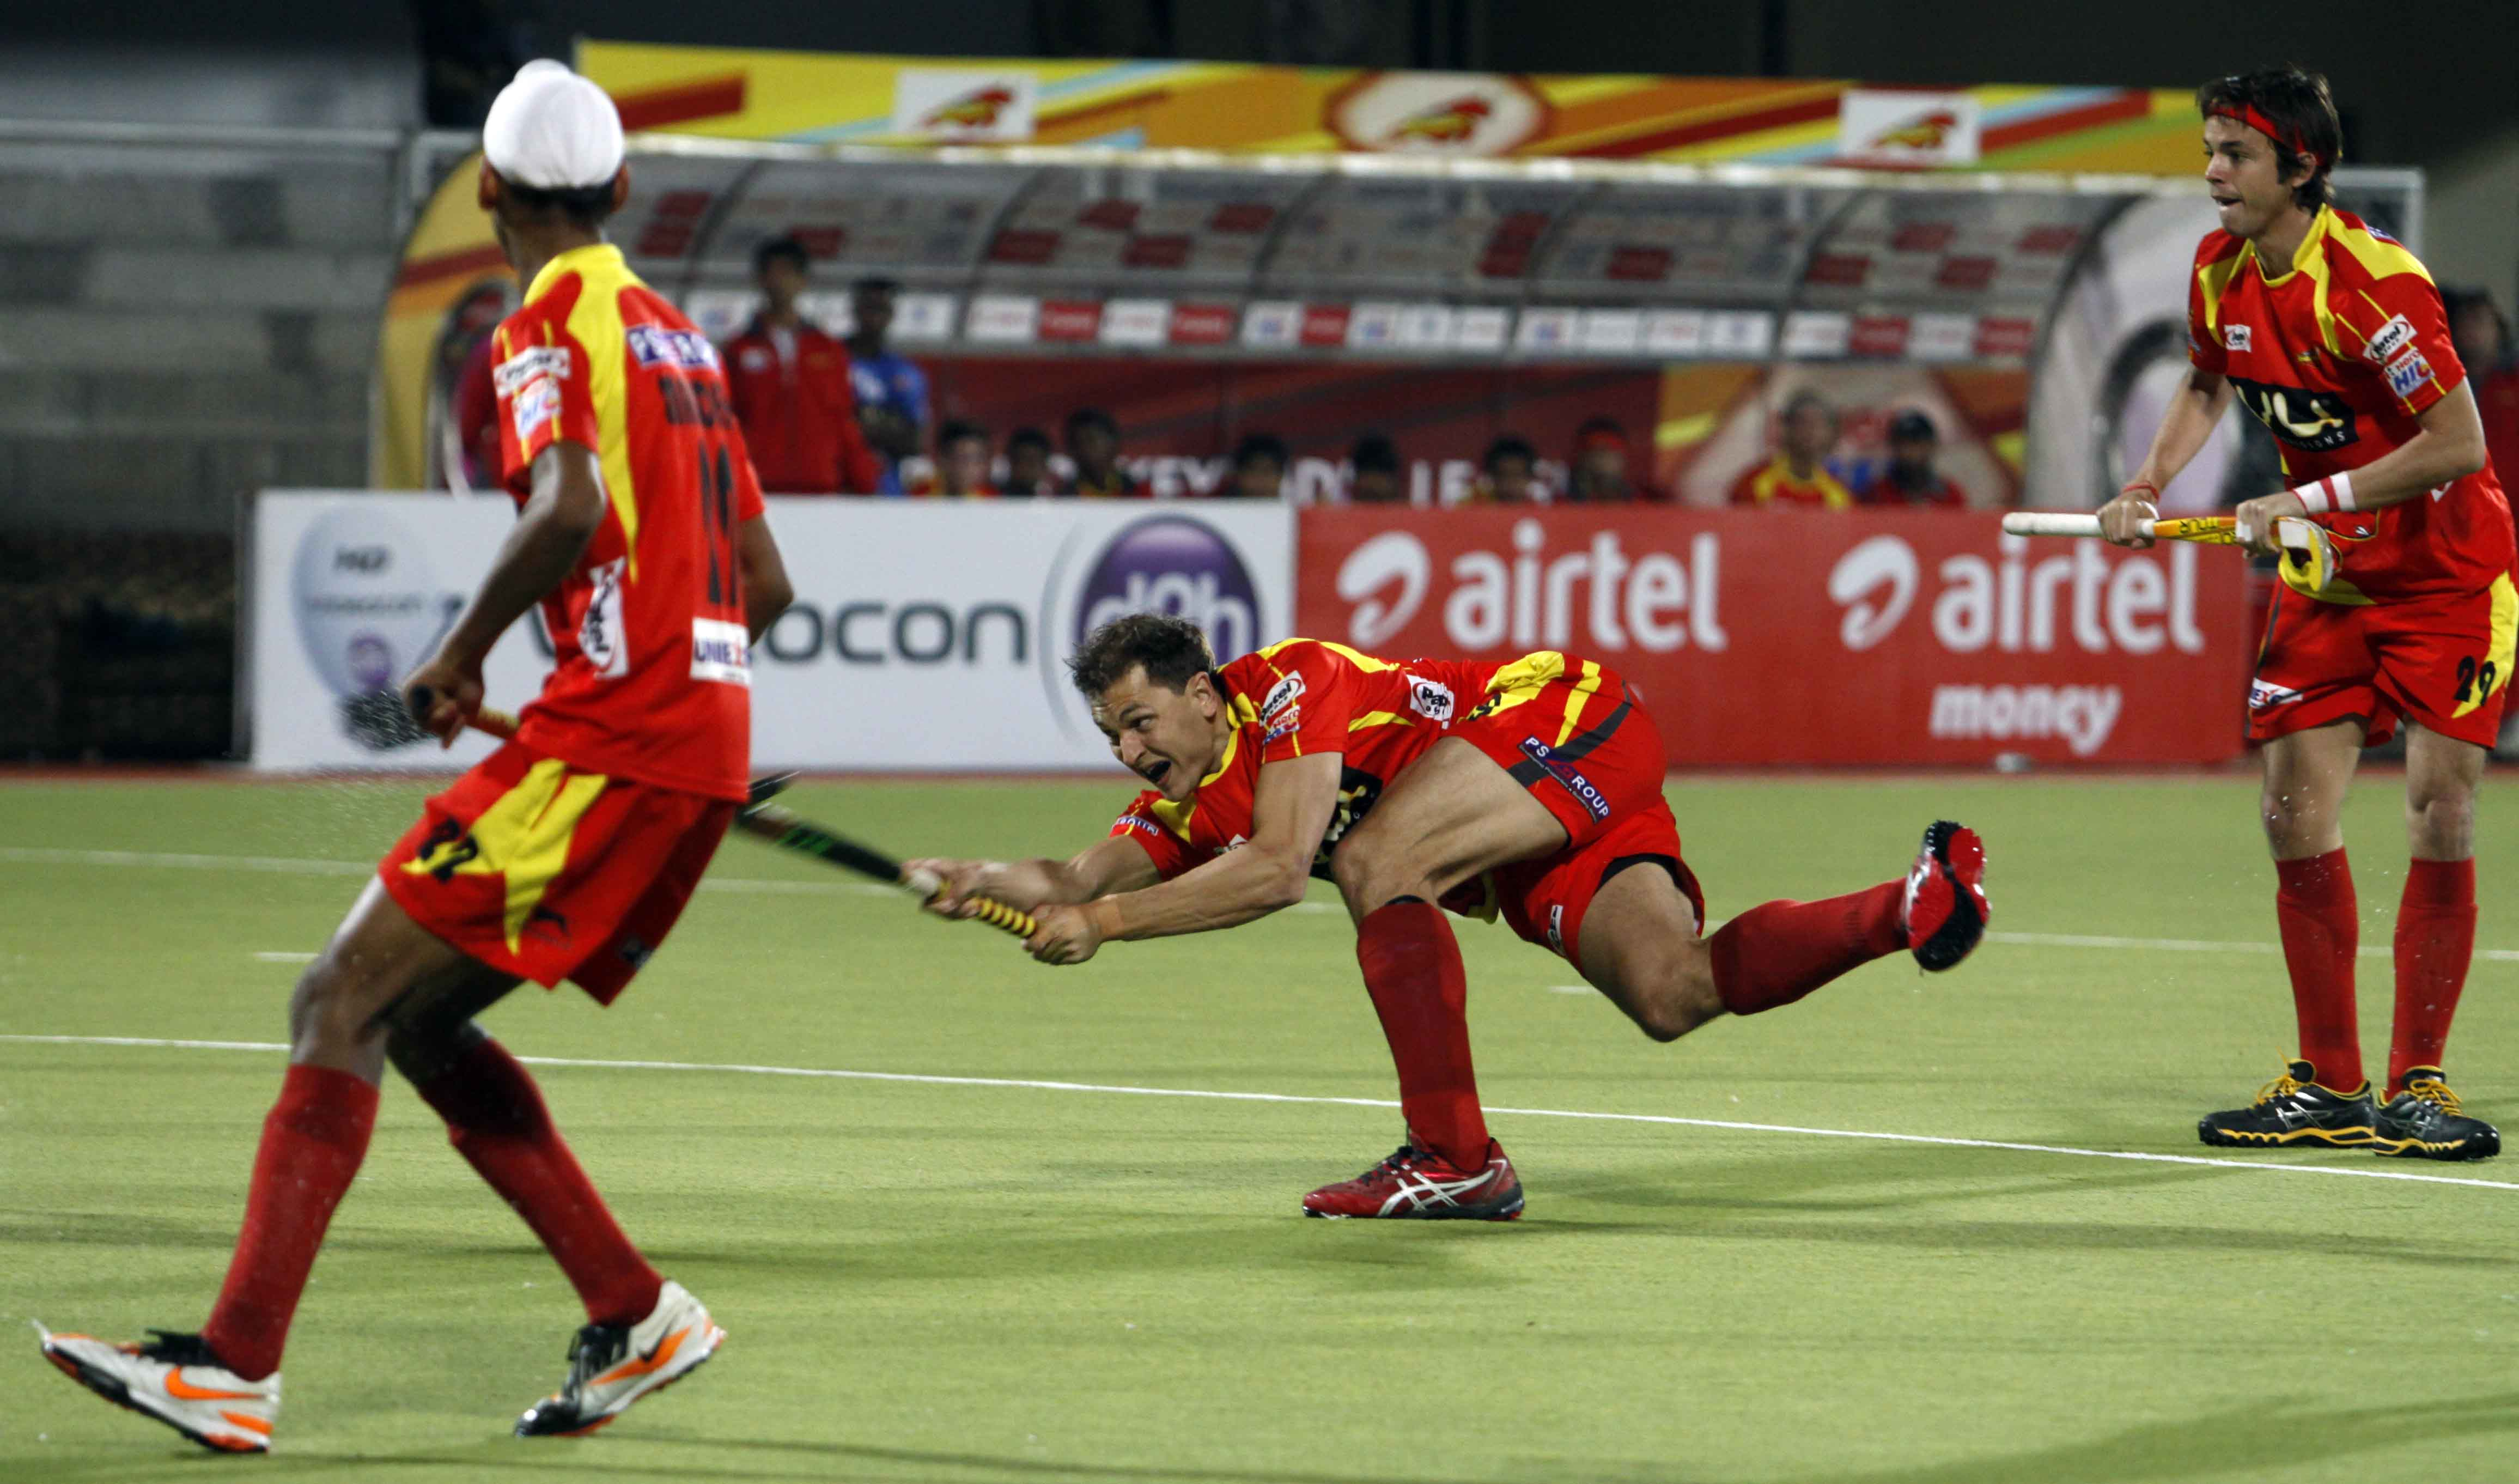 Justin Reid Ross scores the first goal for Ranchi Rhinos as they beat Punjab Warriors at Jalandhar 3-2 on 4th Feb 2013 in the Hero Hockey India League at Surjit Singh Hockey Stadium on Monday.